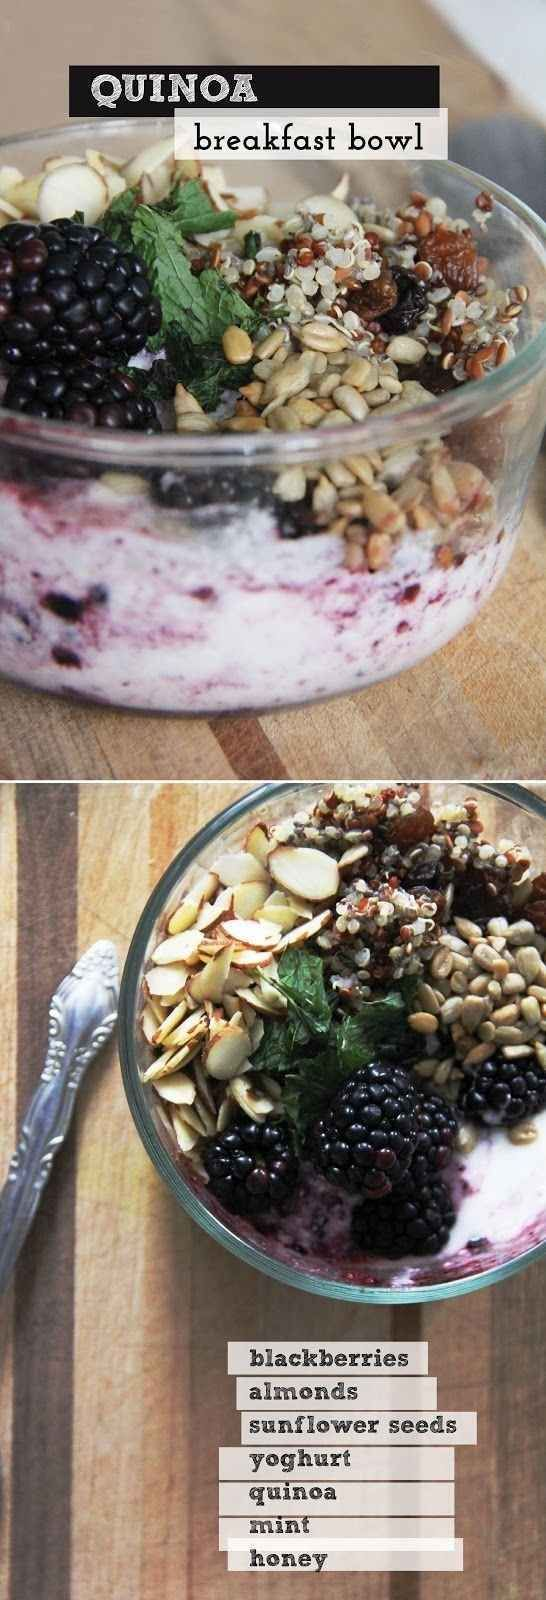 Quinoa Breakfast Bowl: almonds, blackberries, sunflower seeds, yogurt, quinoa, mint, honey.